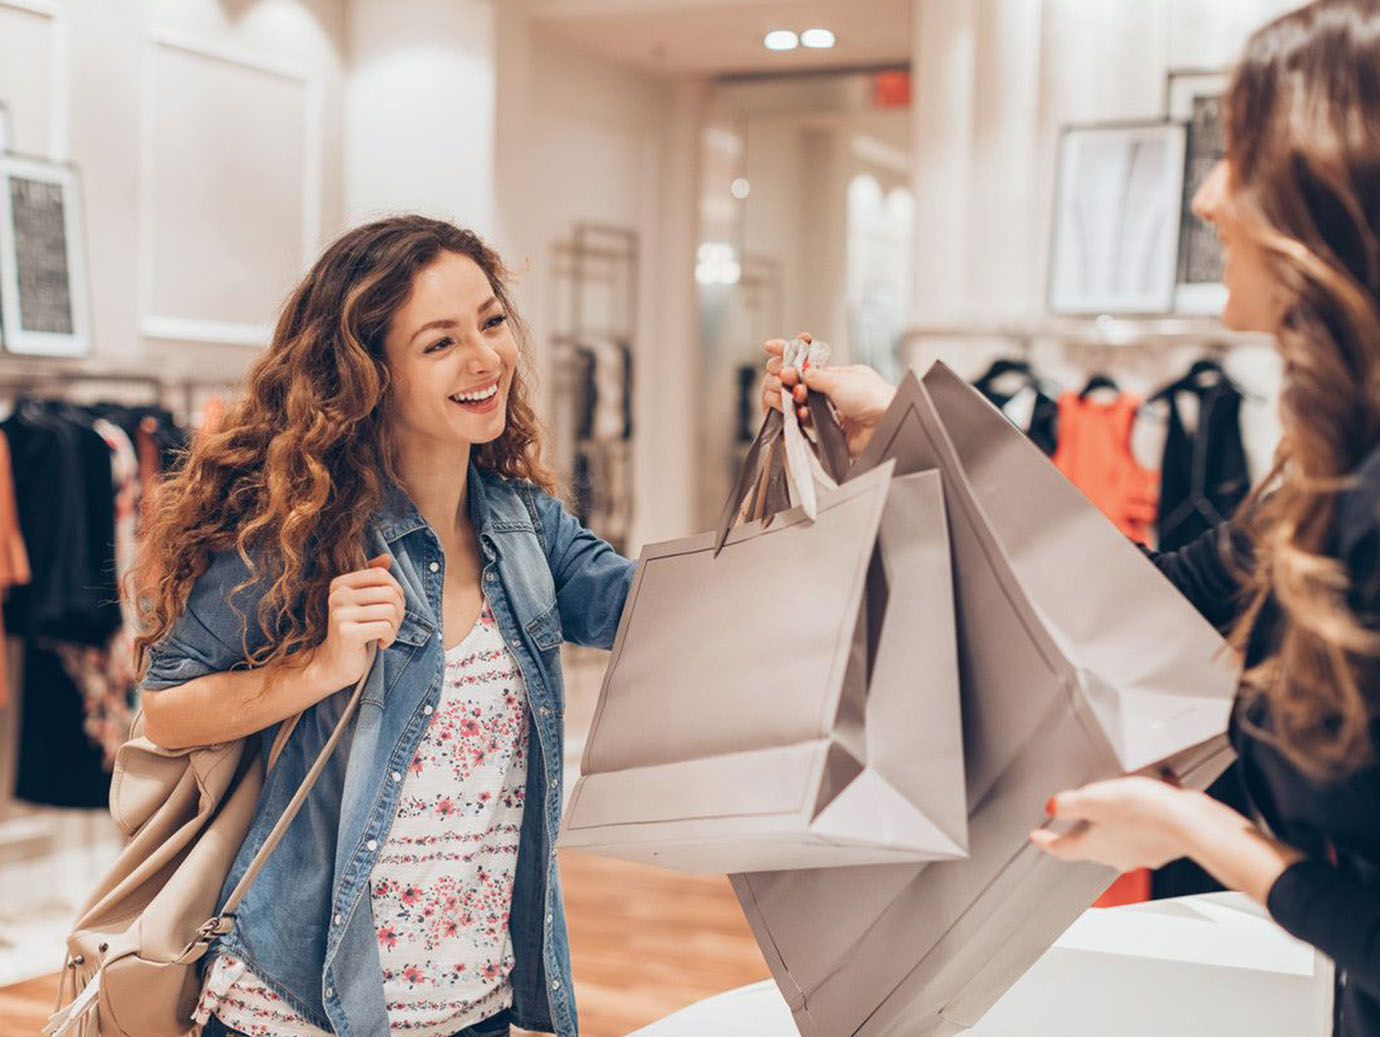 A saleswoman giving shopping bags to a woman in a fashion store